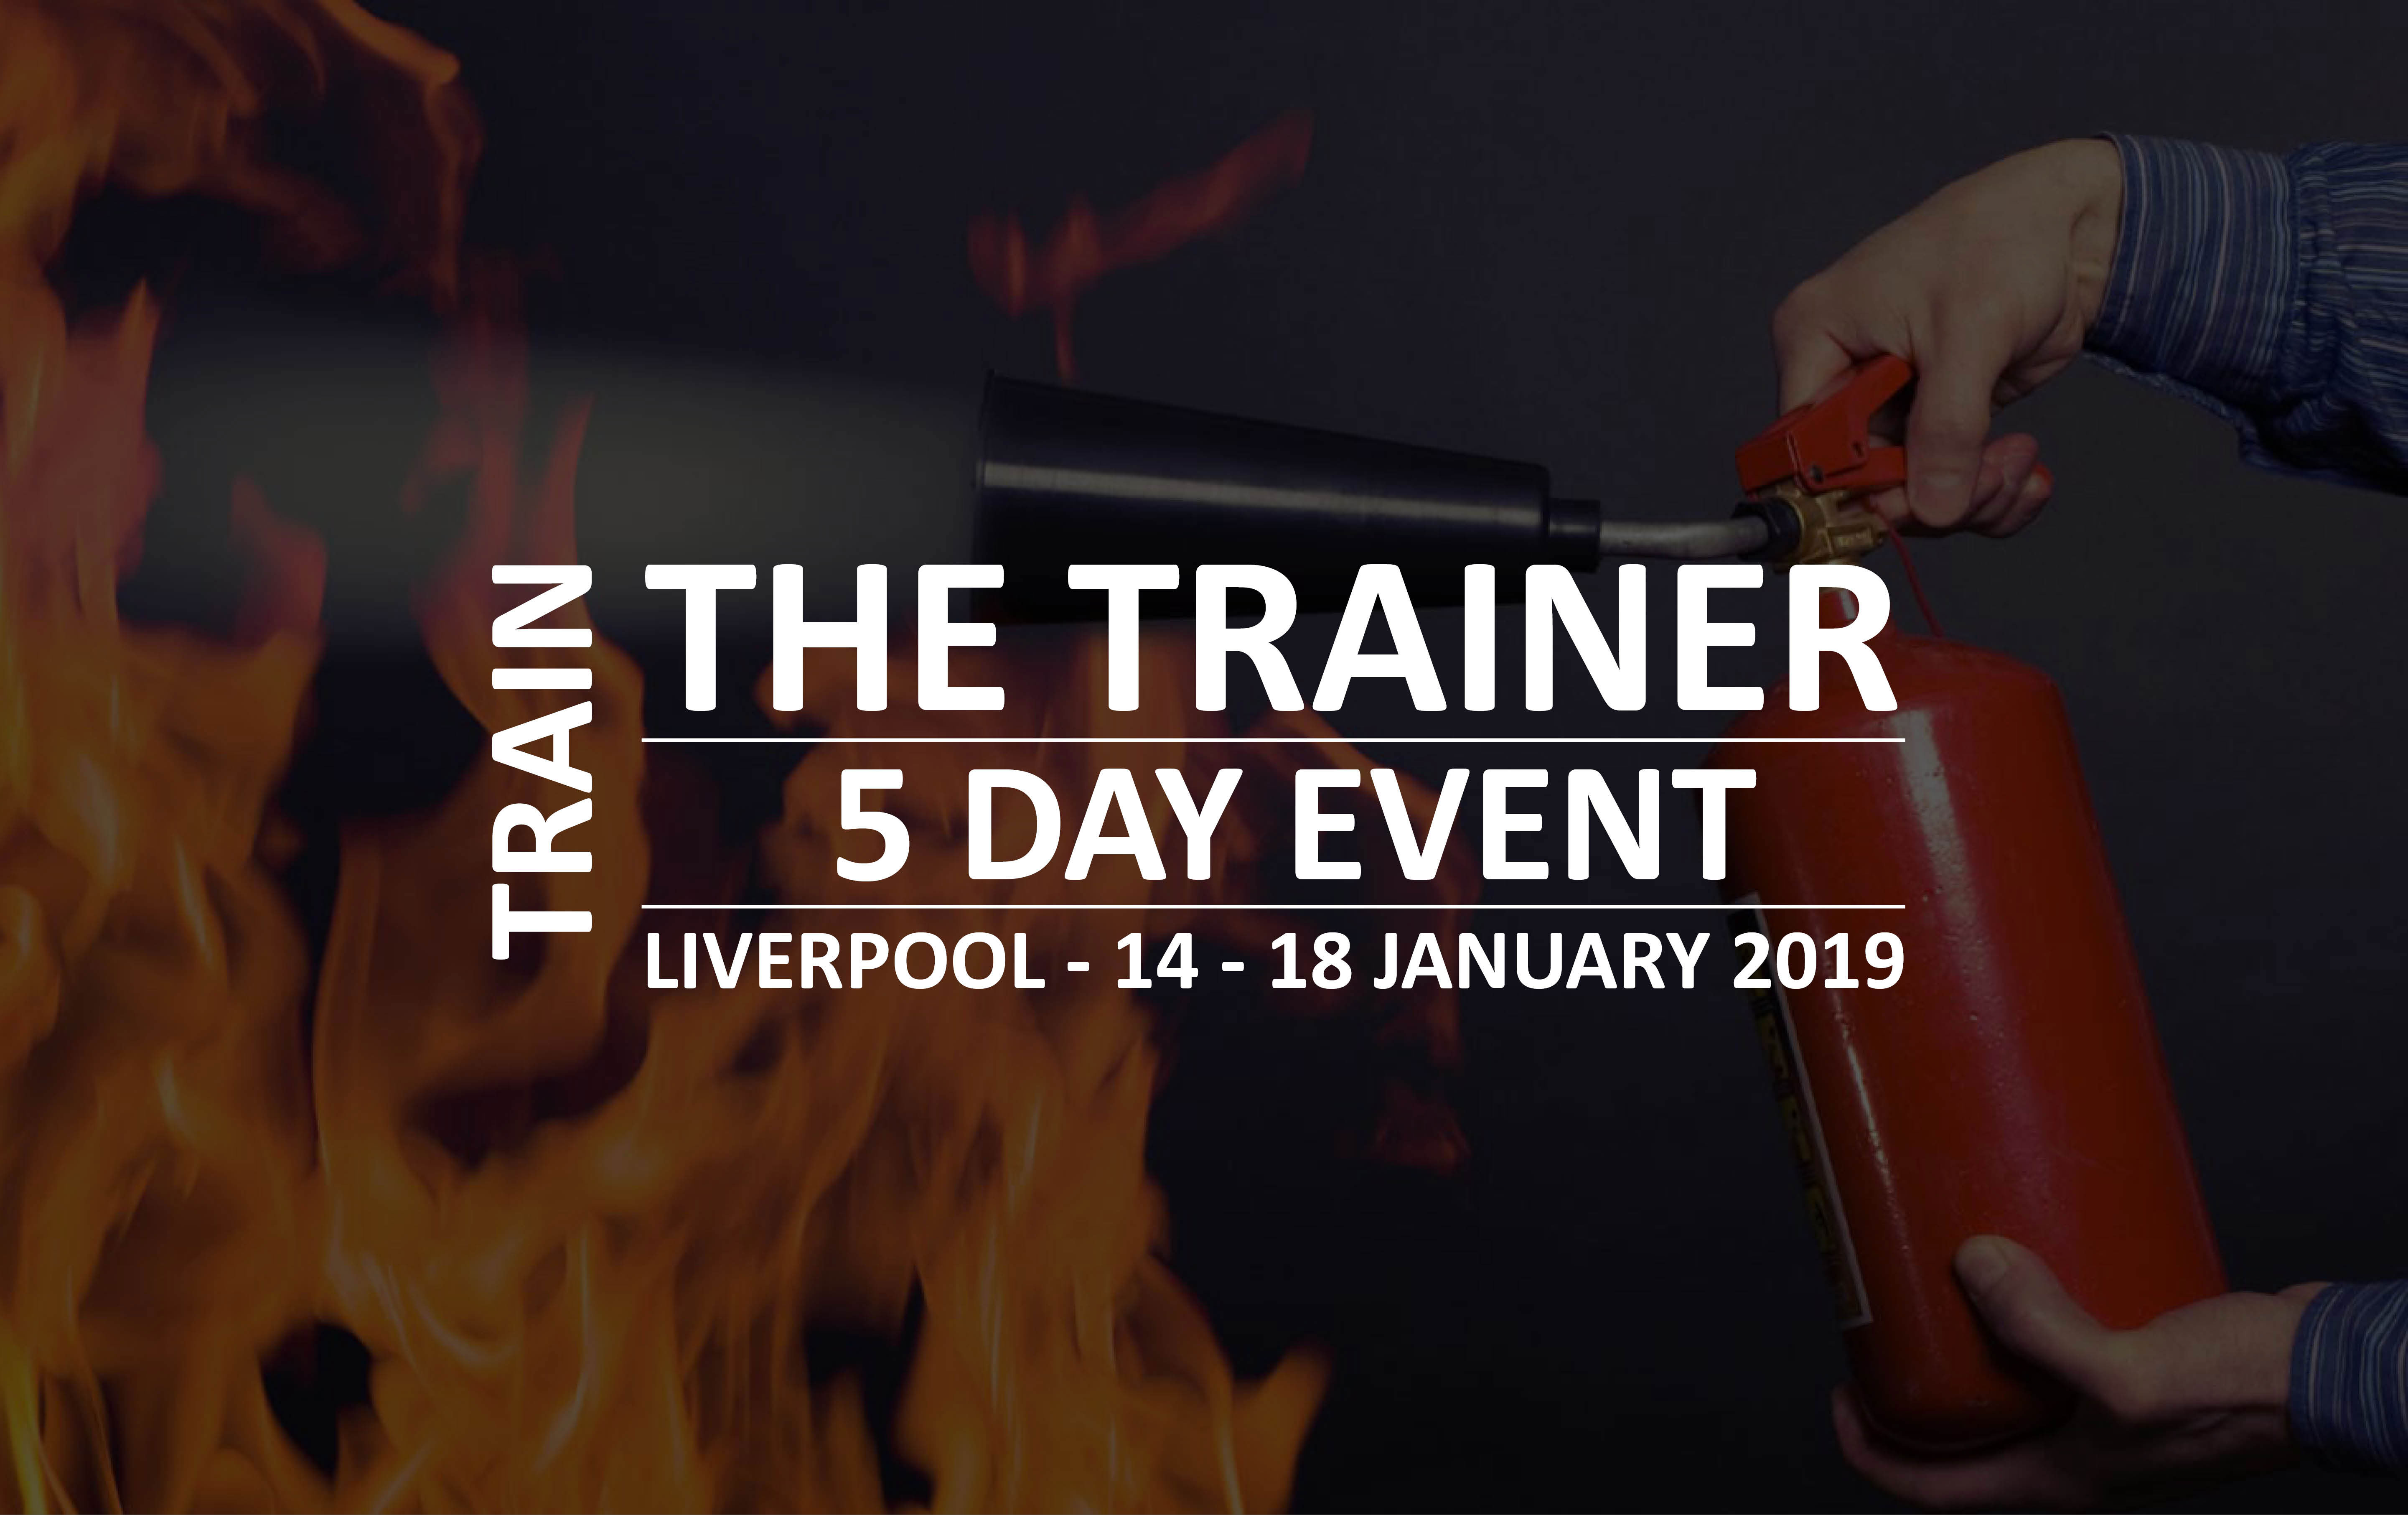 5 Day Train the Trainer Event in Liverpool (14th - 18th January 2019)